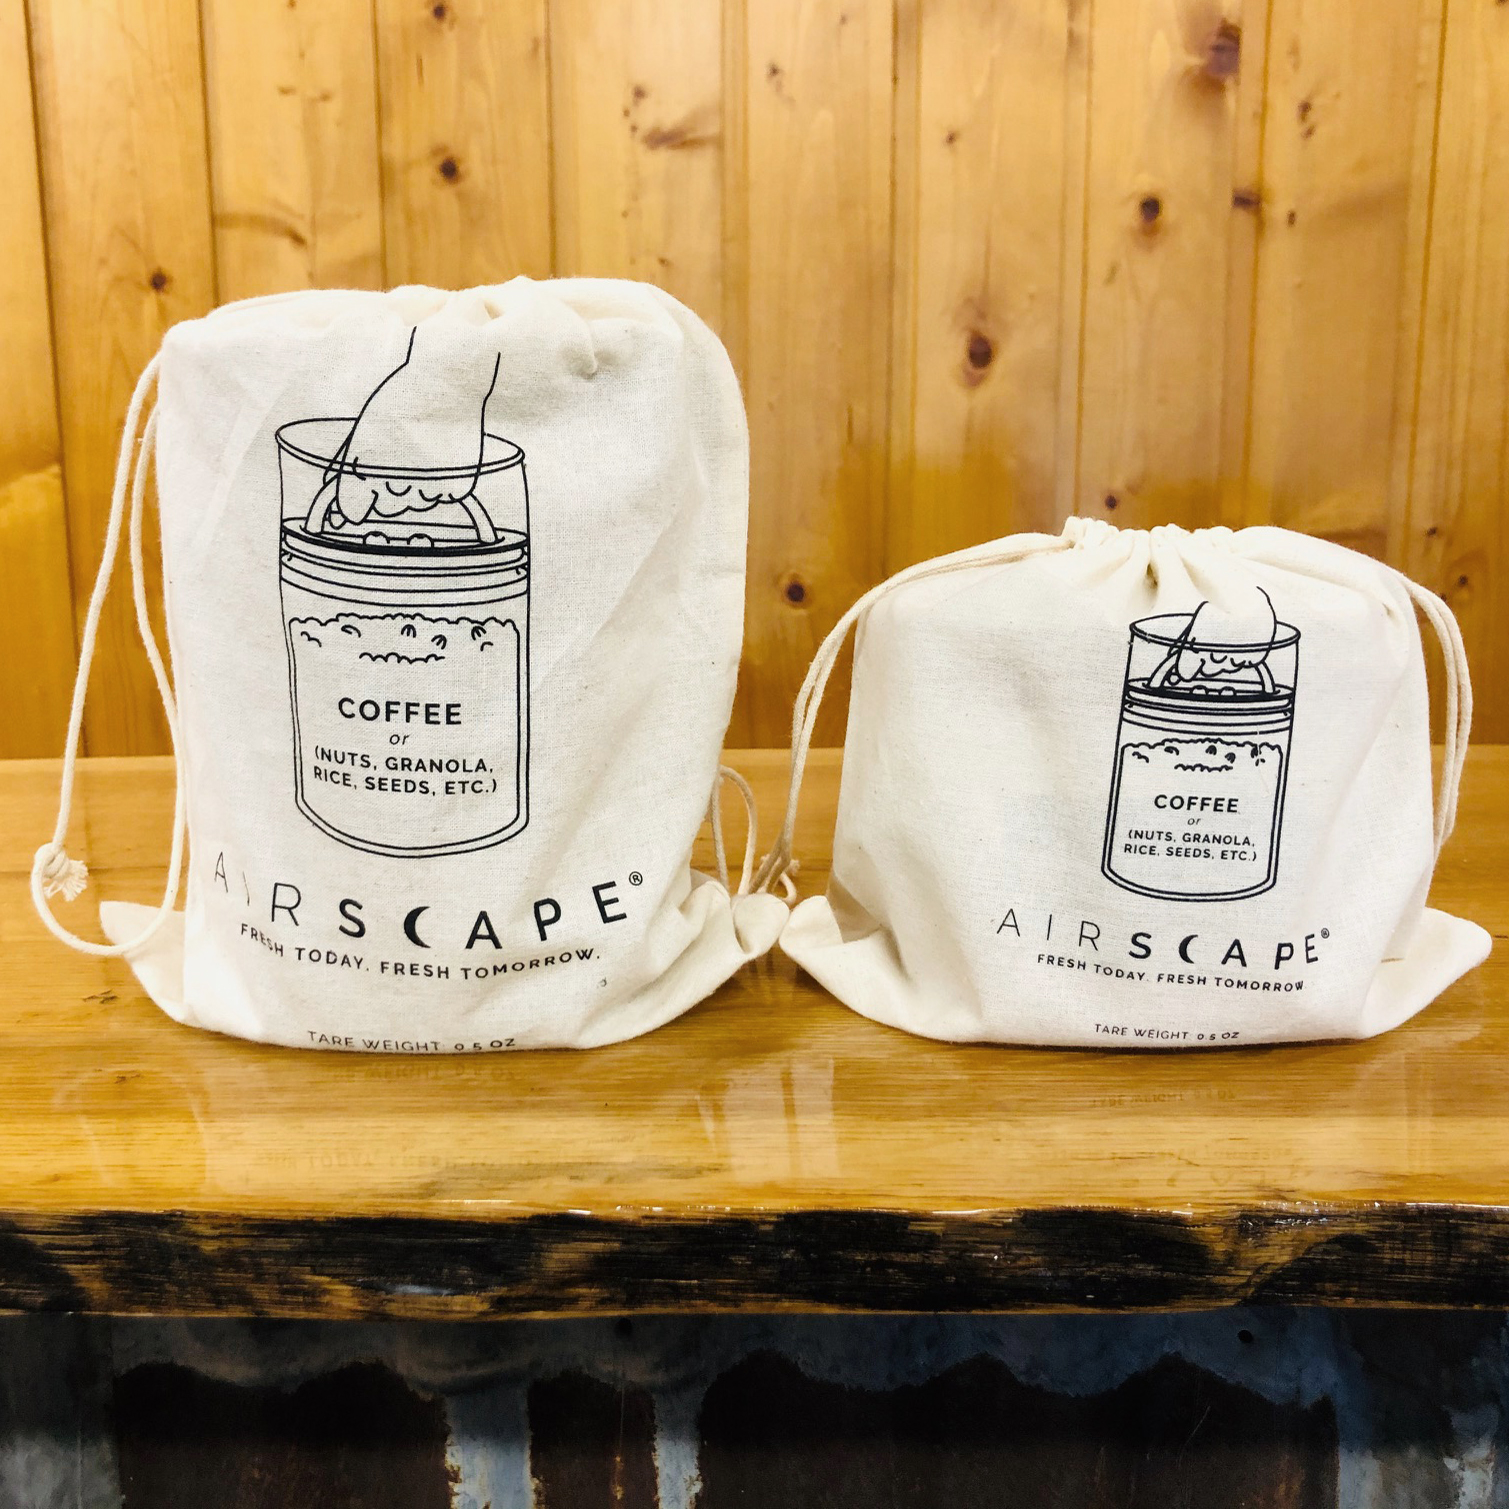 photo of front of Airscape cotton refill bags